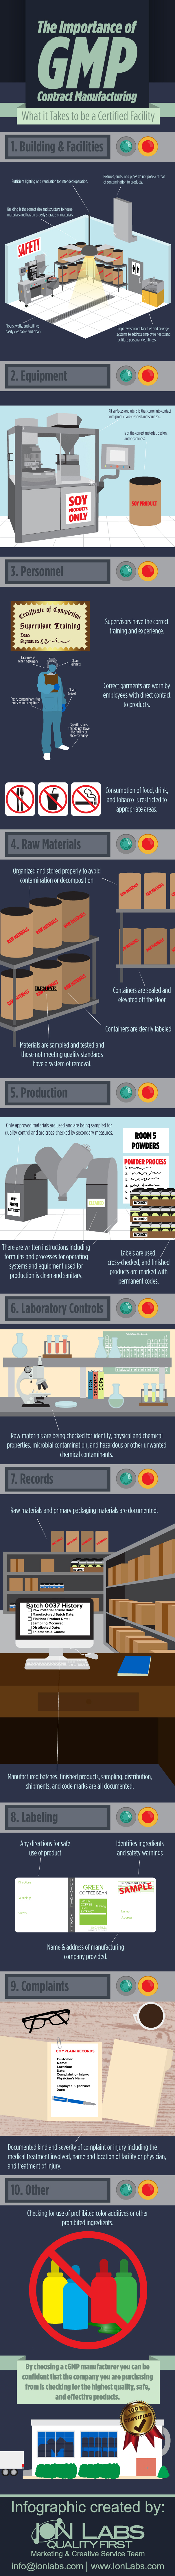 The Importance of GMP Contract Manufacturing Infographic